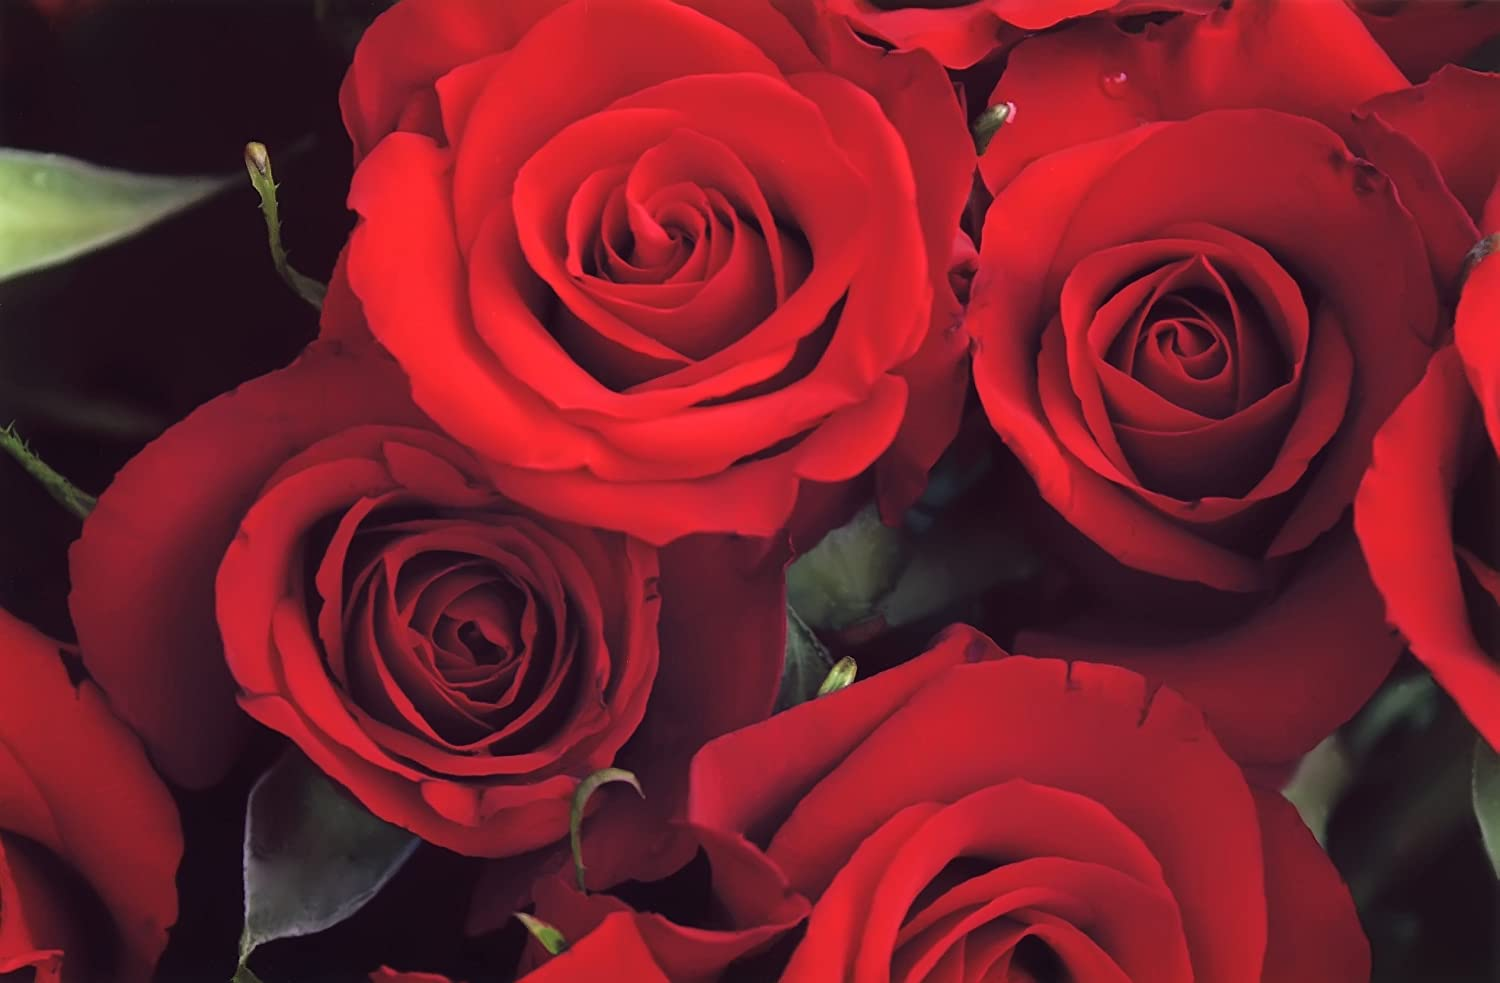 Amazon flowers for delivery on amazon bouquet of 25 red fresh amazon flowers for delivery on amazon bouquet of 25 red fresh roses delivered with free flower food packet long stem rose in bud form izmirmasajfo